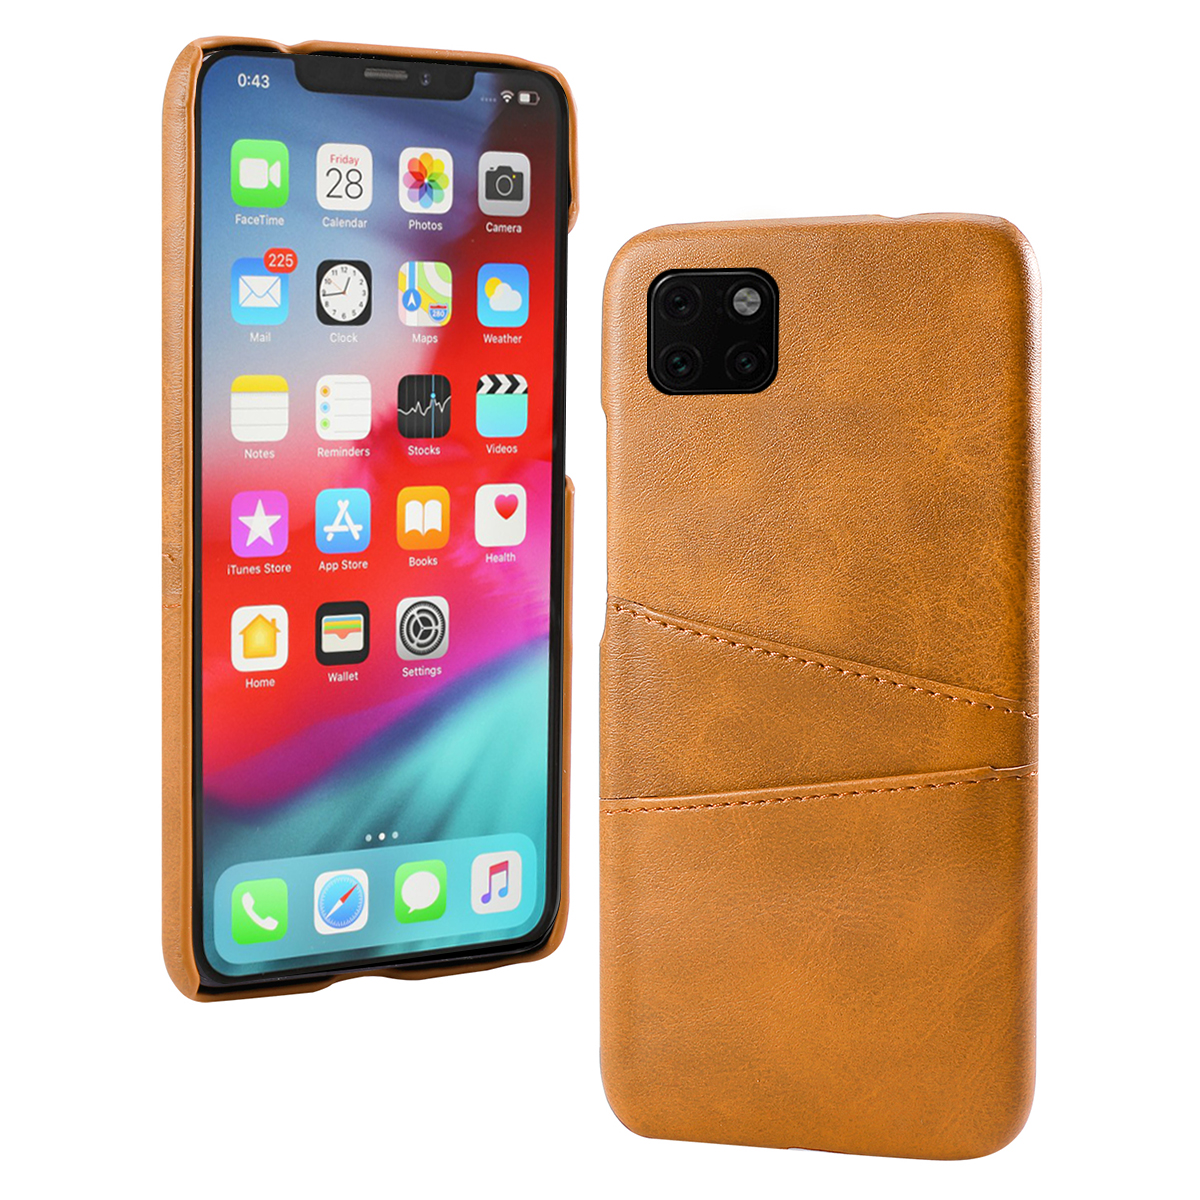 Torubia Leather Card Holder Case for iPhone 11/11 Pro/11 Pro Max 23